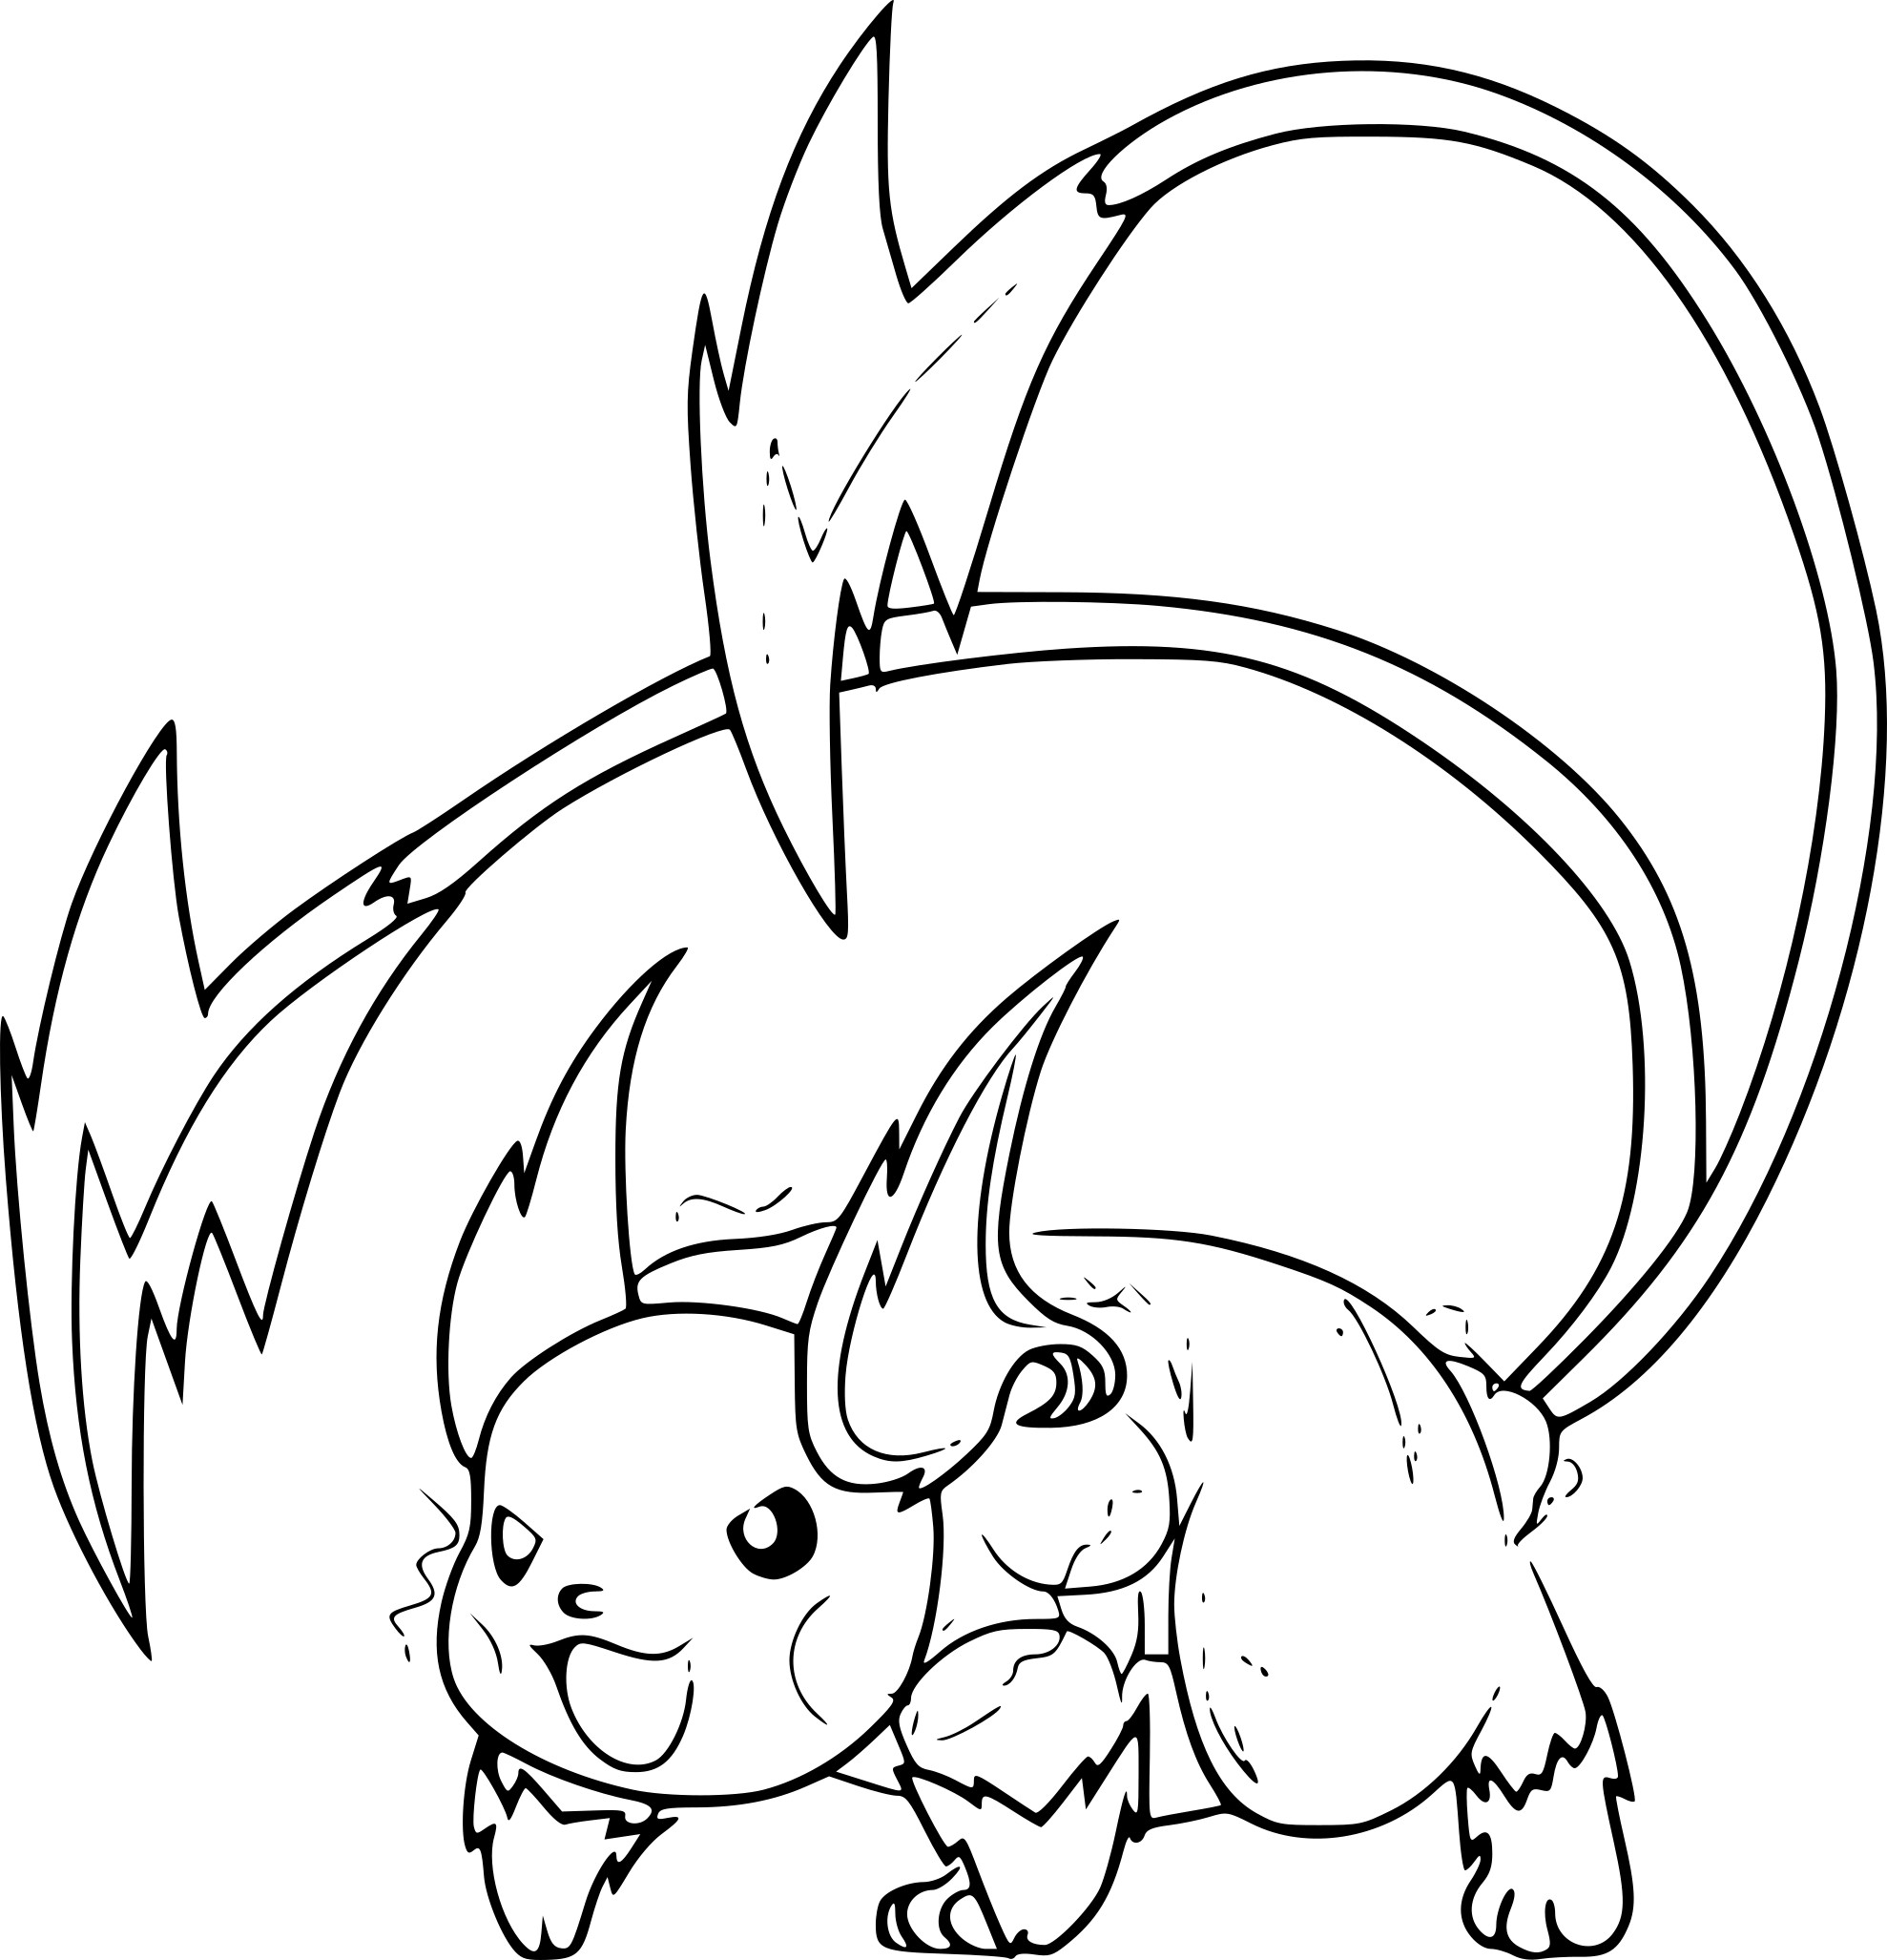 Cousin Coloriage Pokemon Mega Evolution Evoli Meilleur Coloriage